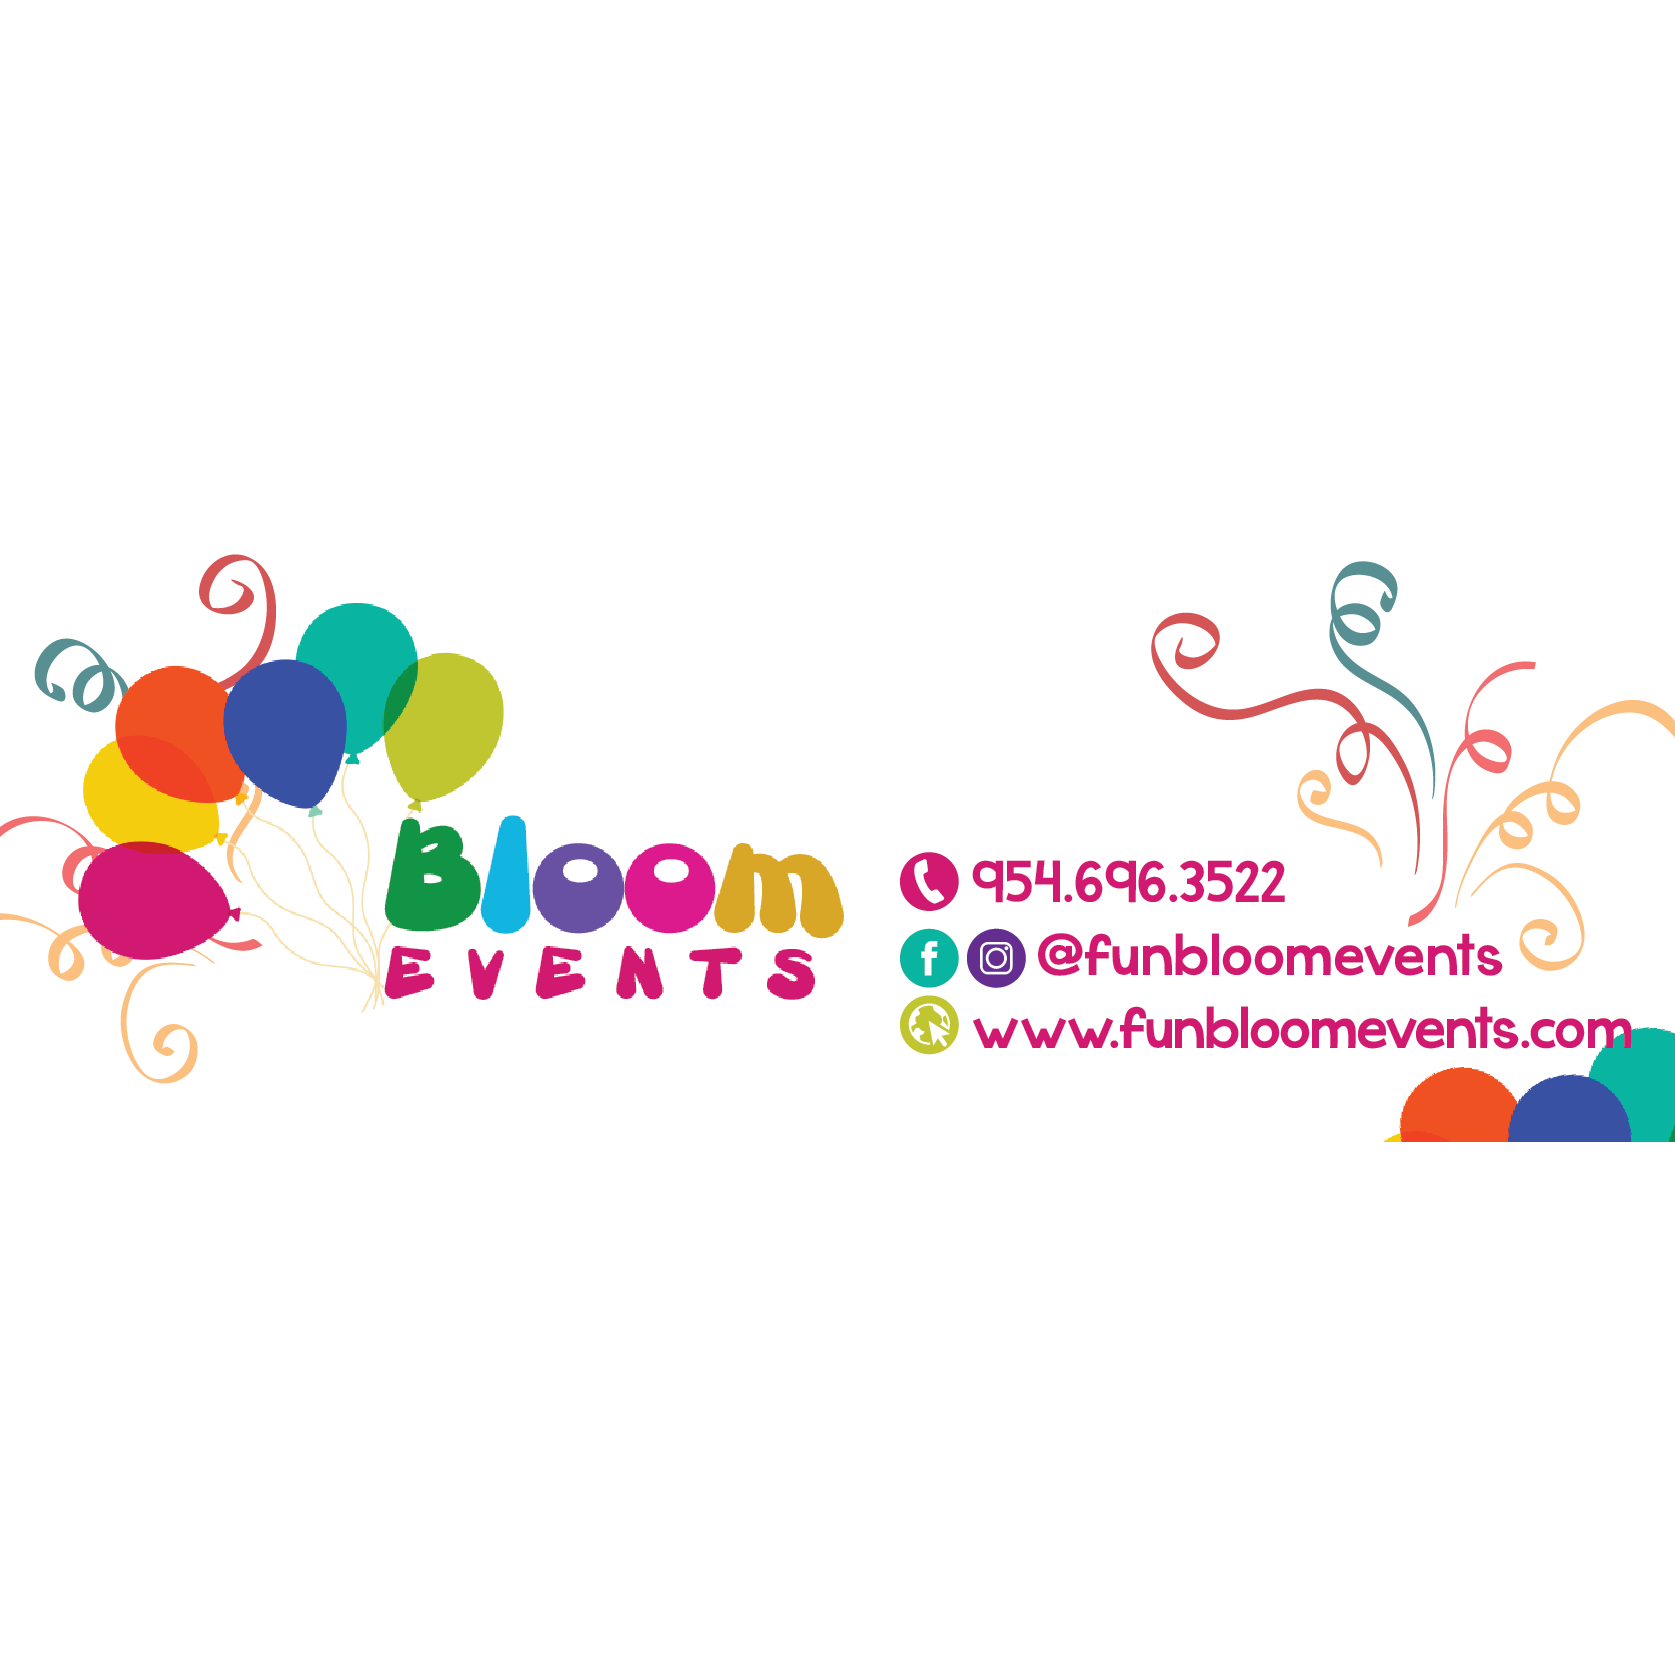 Bloom Events, LLC - Plantation, FL 33324 - (954)696-3522 | ShowMeLocal.com